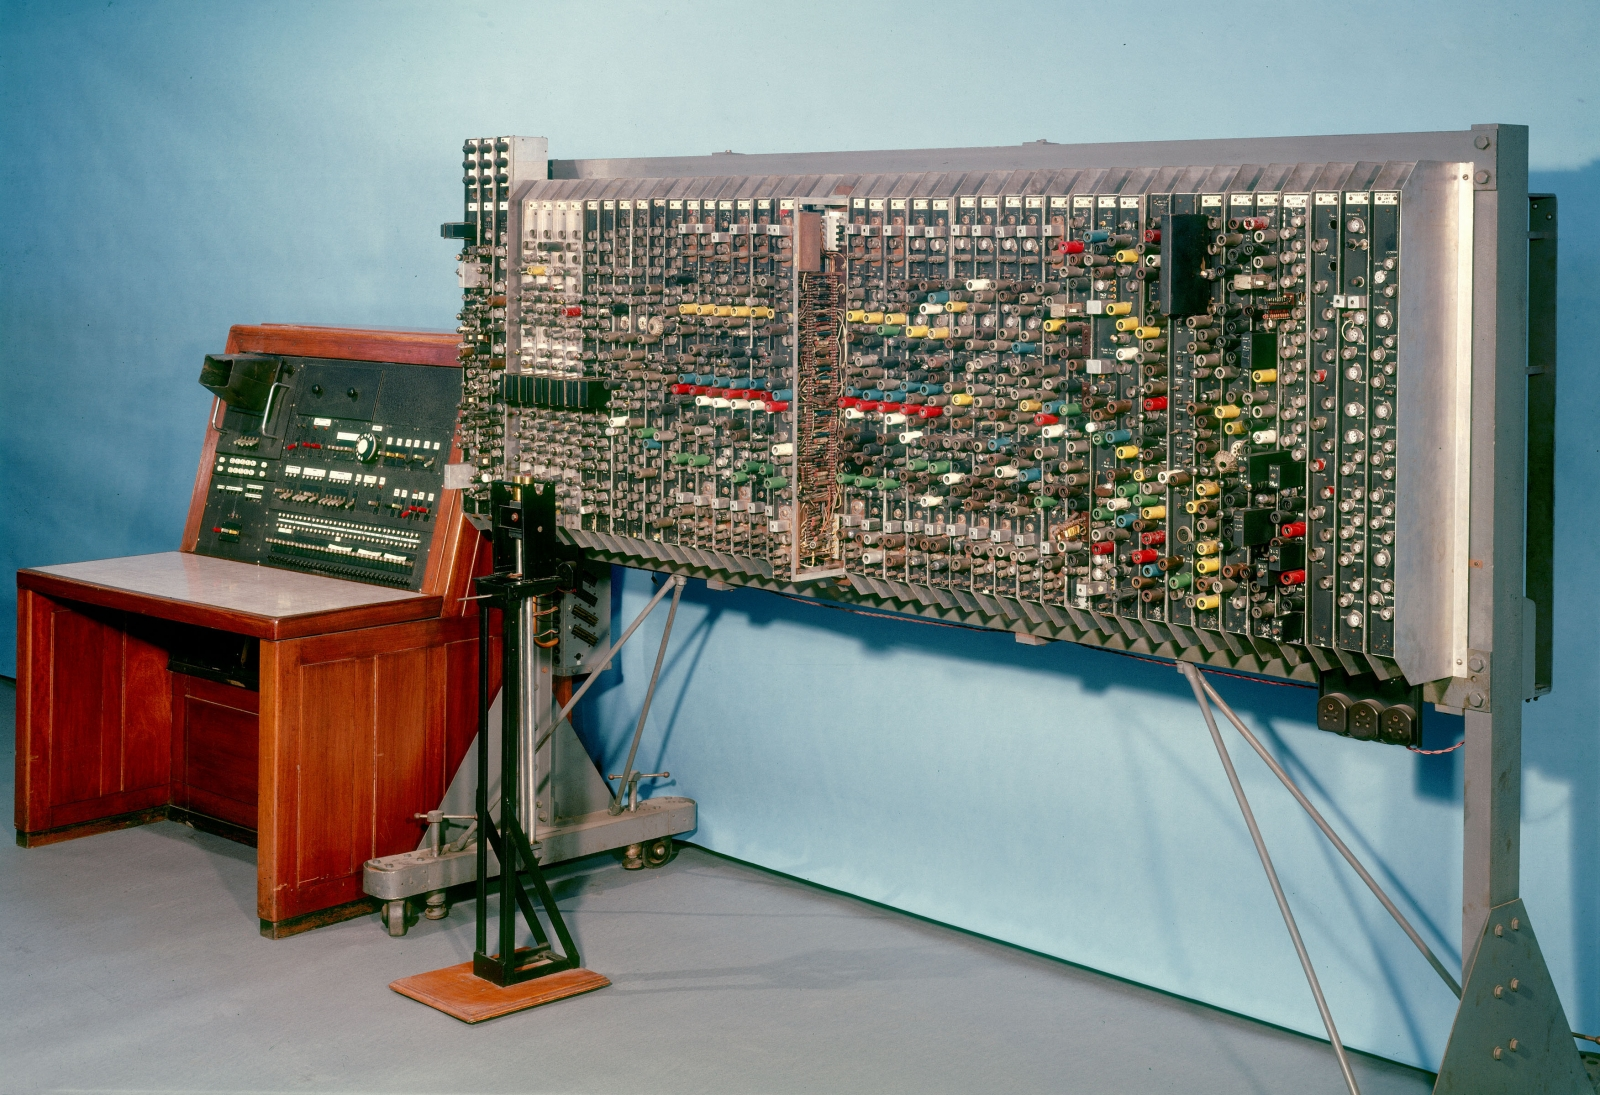 The Pilot Ace Computer, designed by Alan Turing at the National Physical Laboratory in the early 1950s